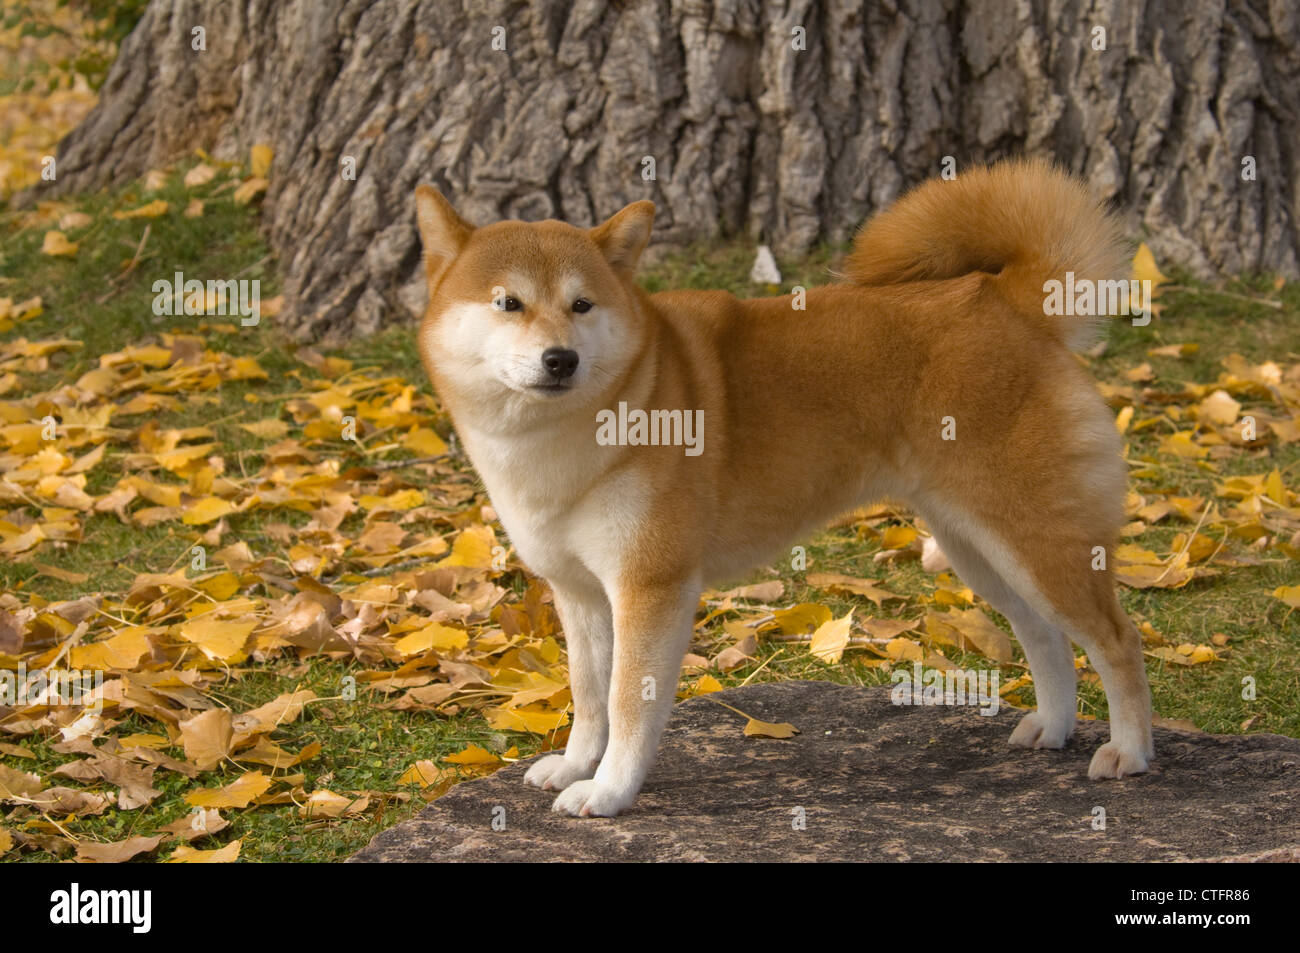 Shiba Inu standing on granite slab - Stock Image